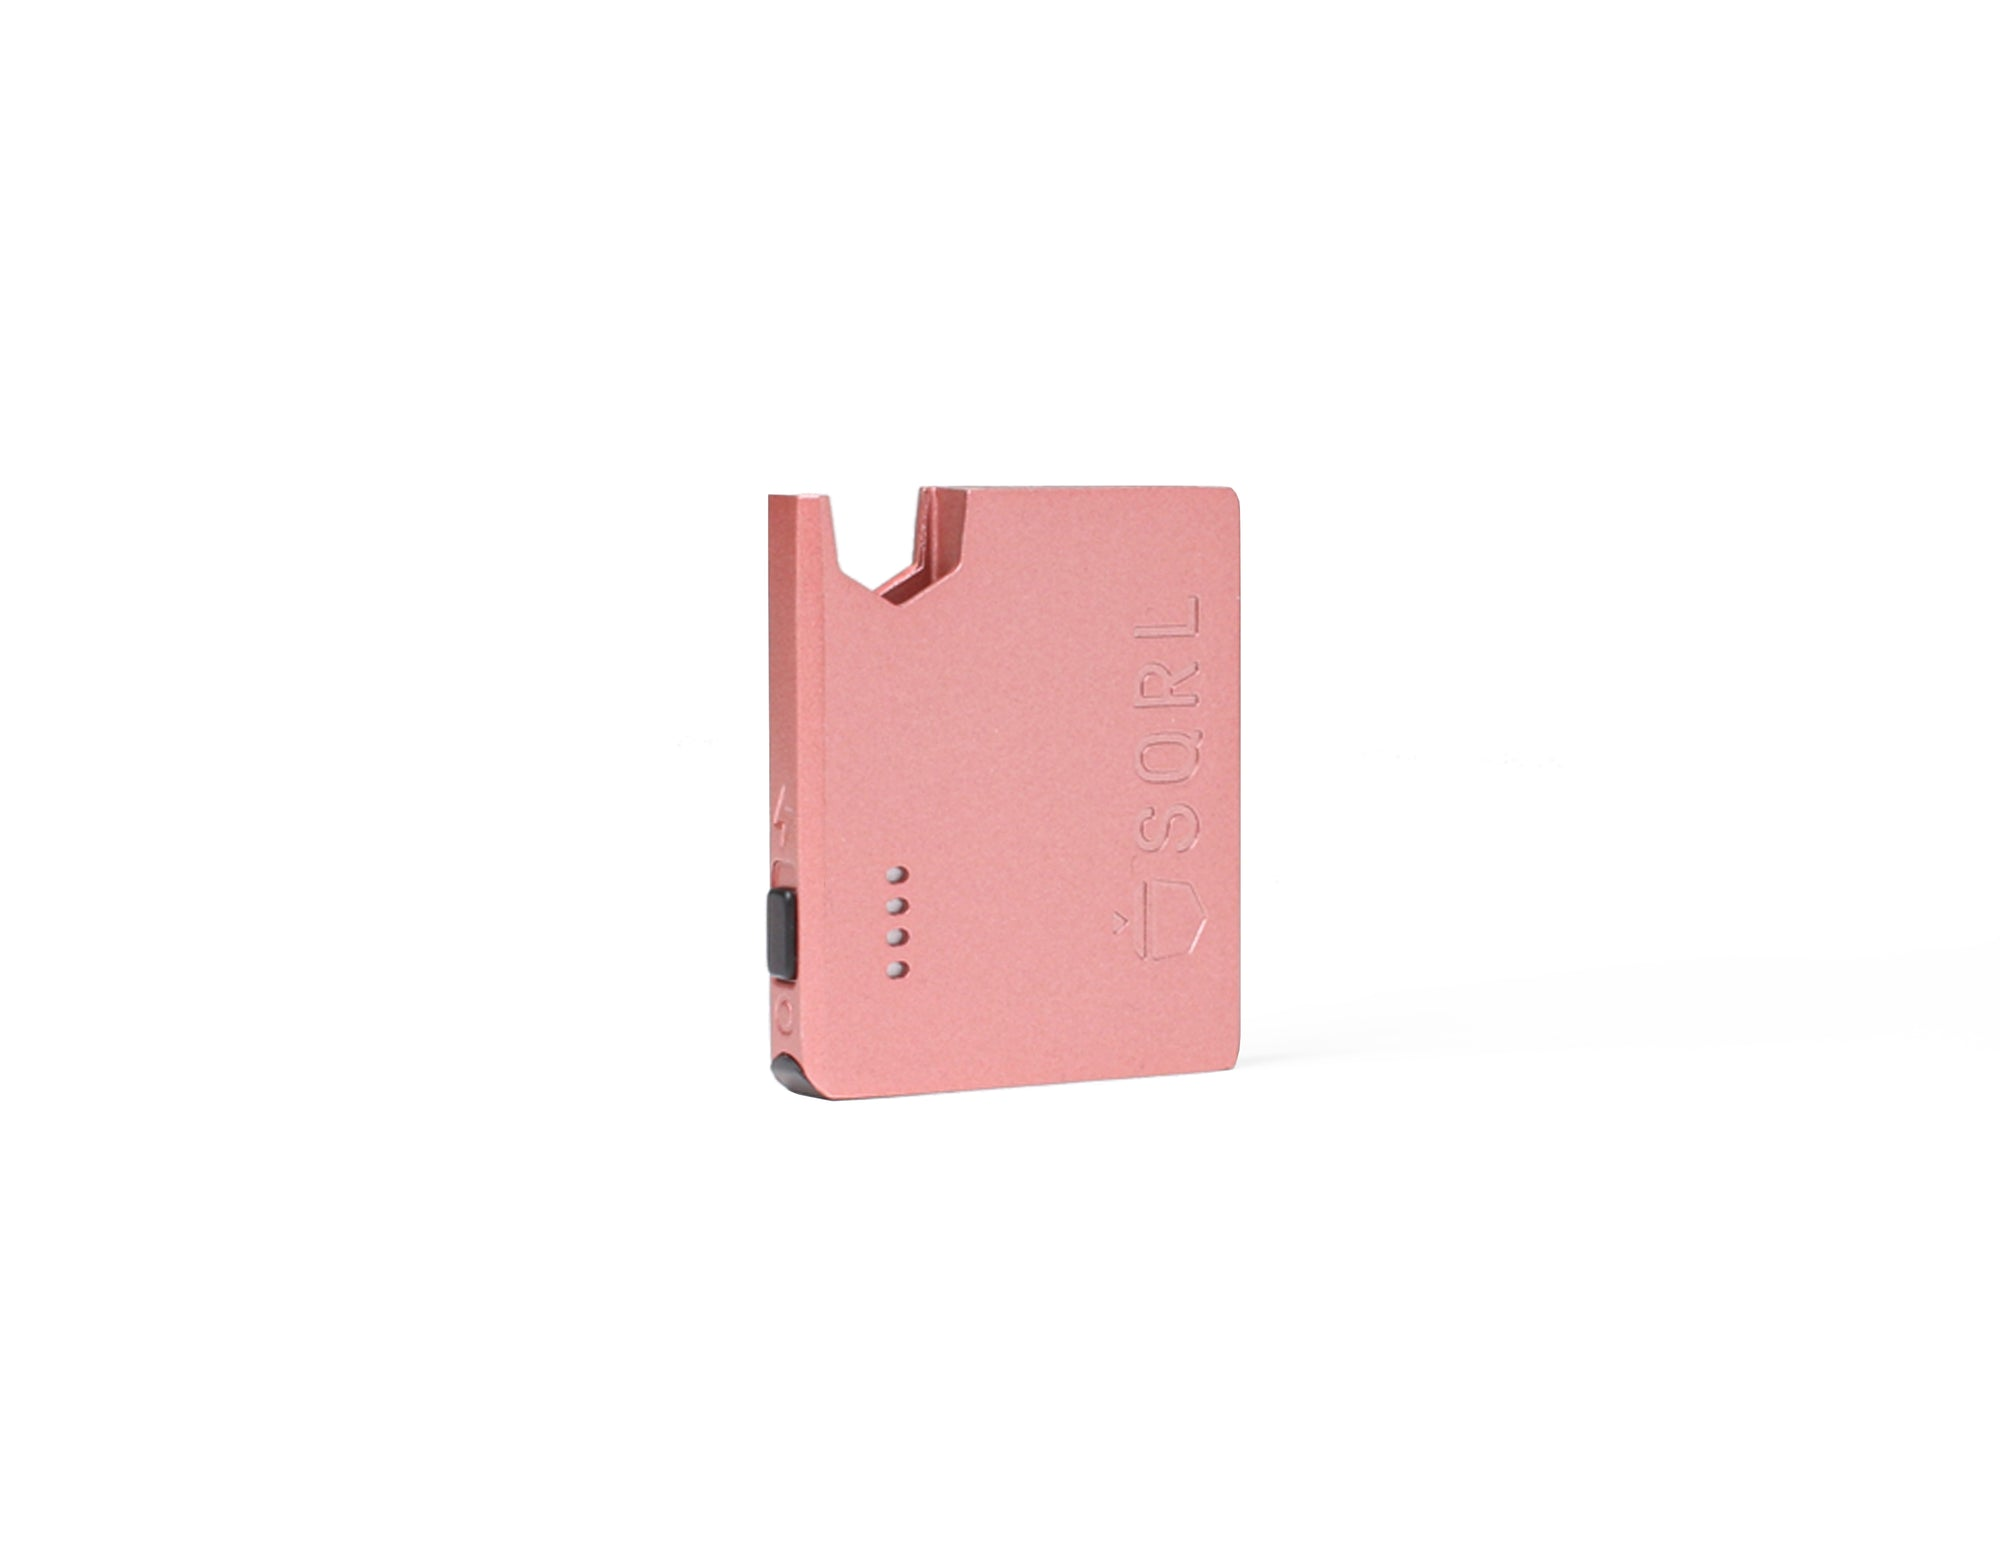 SQRL NCT Compatible Pod Device - Rose Gold